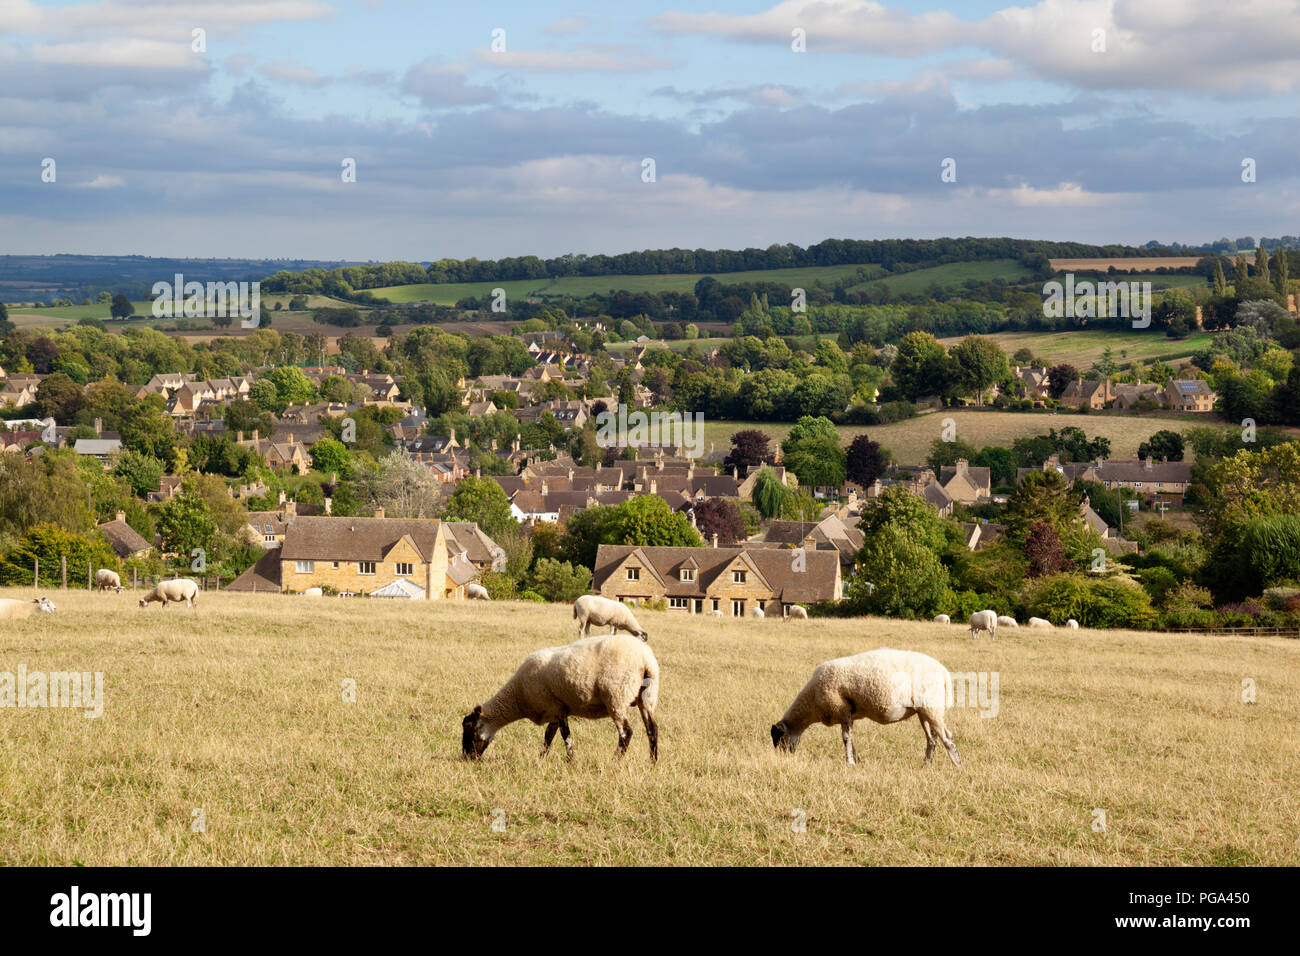 Sheep grazing summer grass above Cotswold town of Chipping Campden, Chipping Campden, Cotswolds, Gloucestershire, England, United Kingdom, Europe - Stock Image